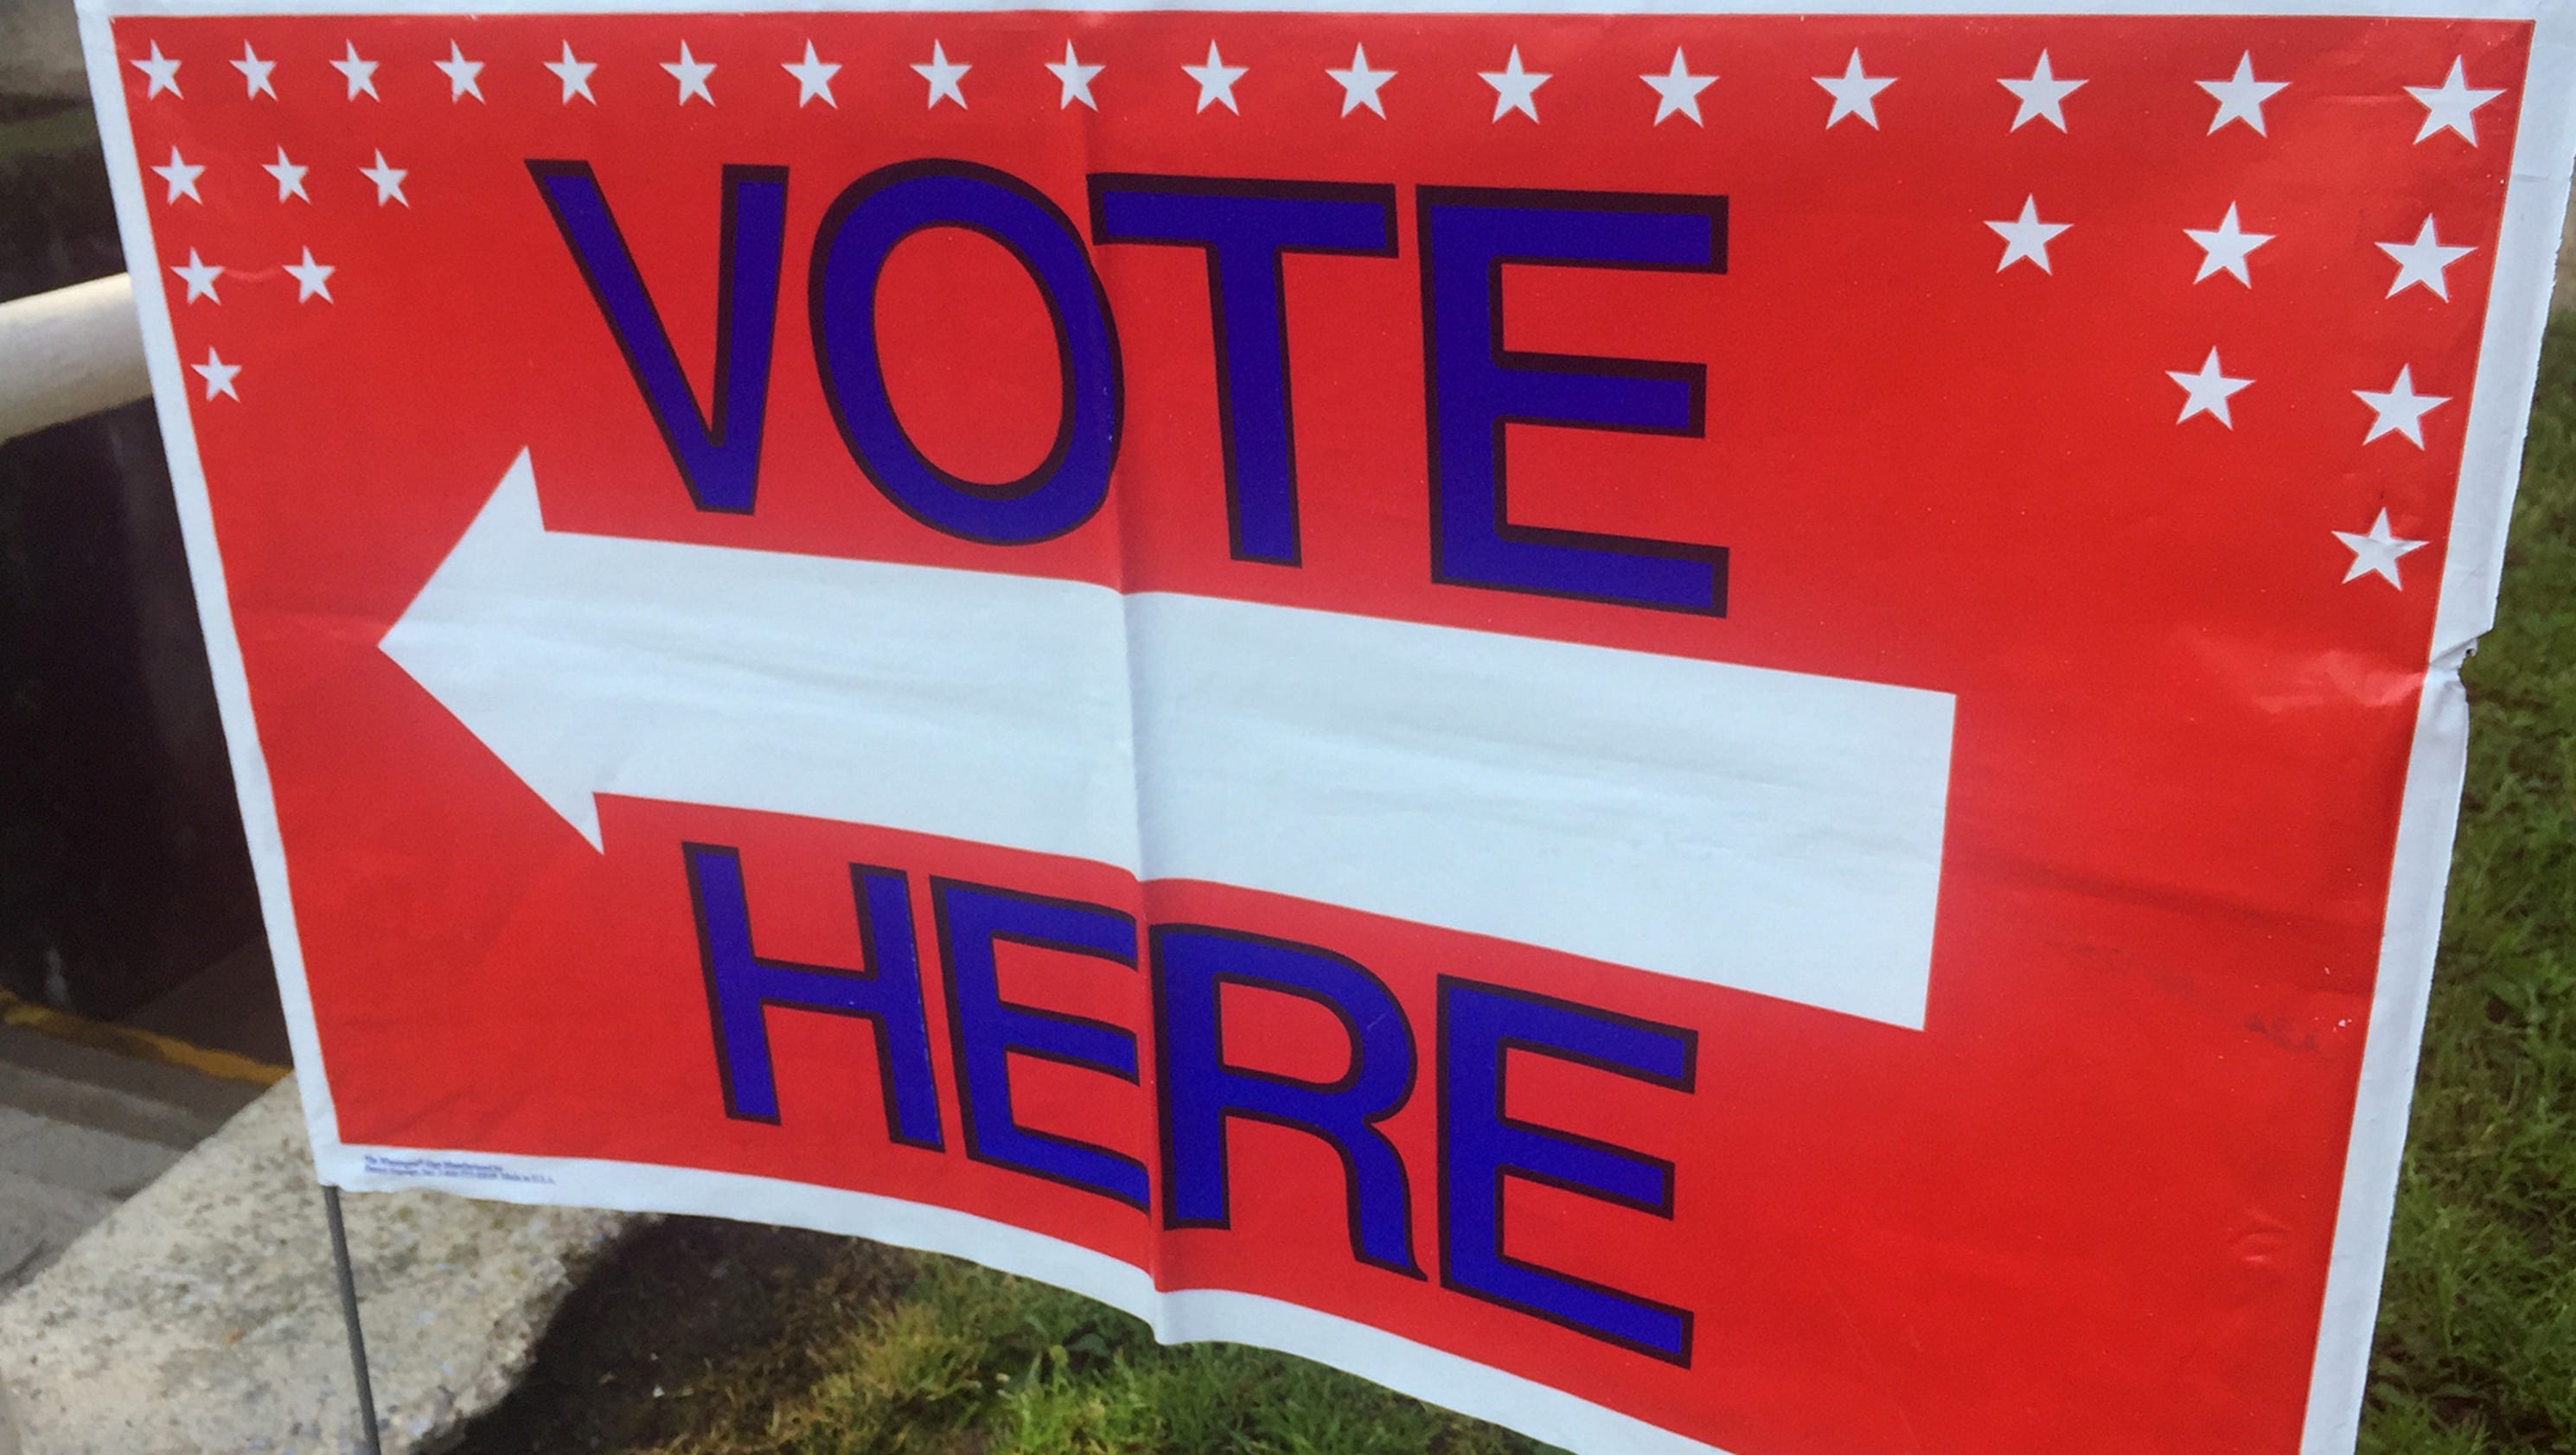 PHOTOS: Primary election day is Tuesday, May 15